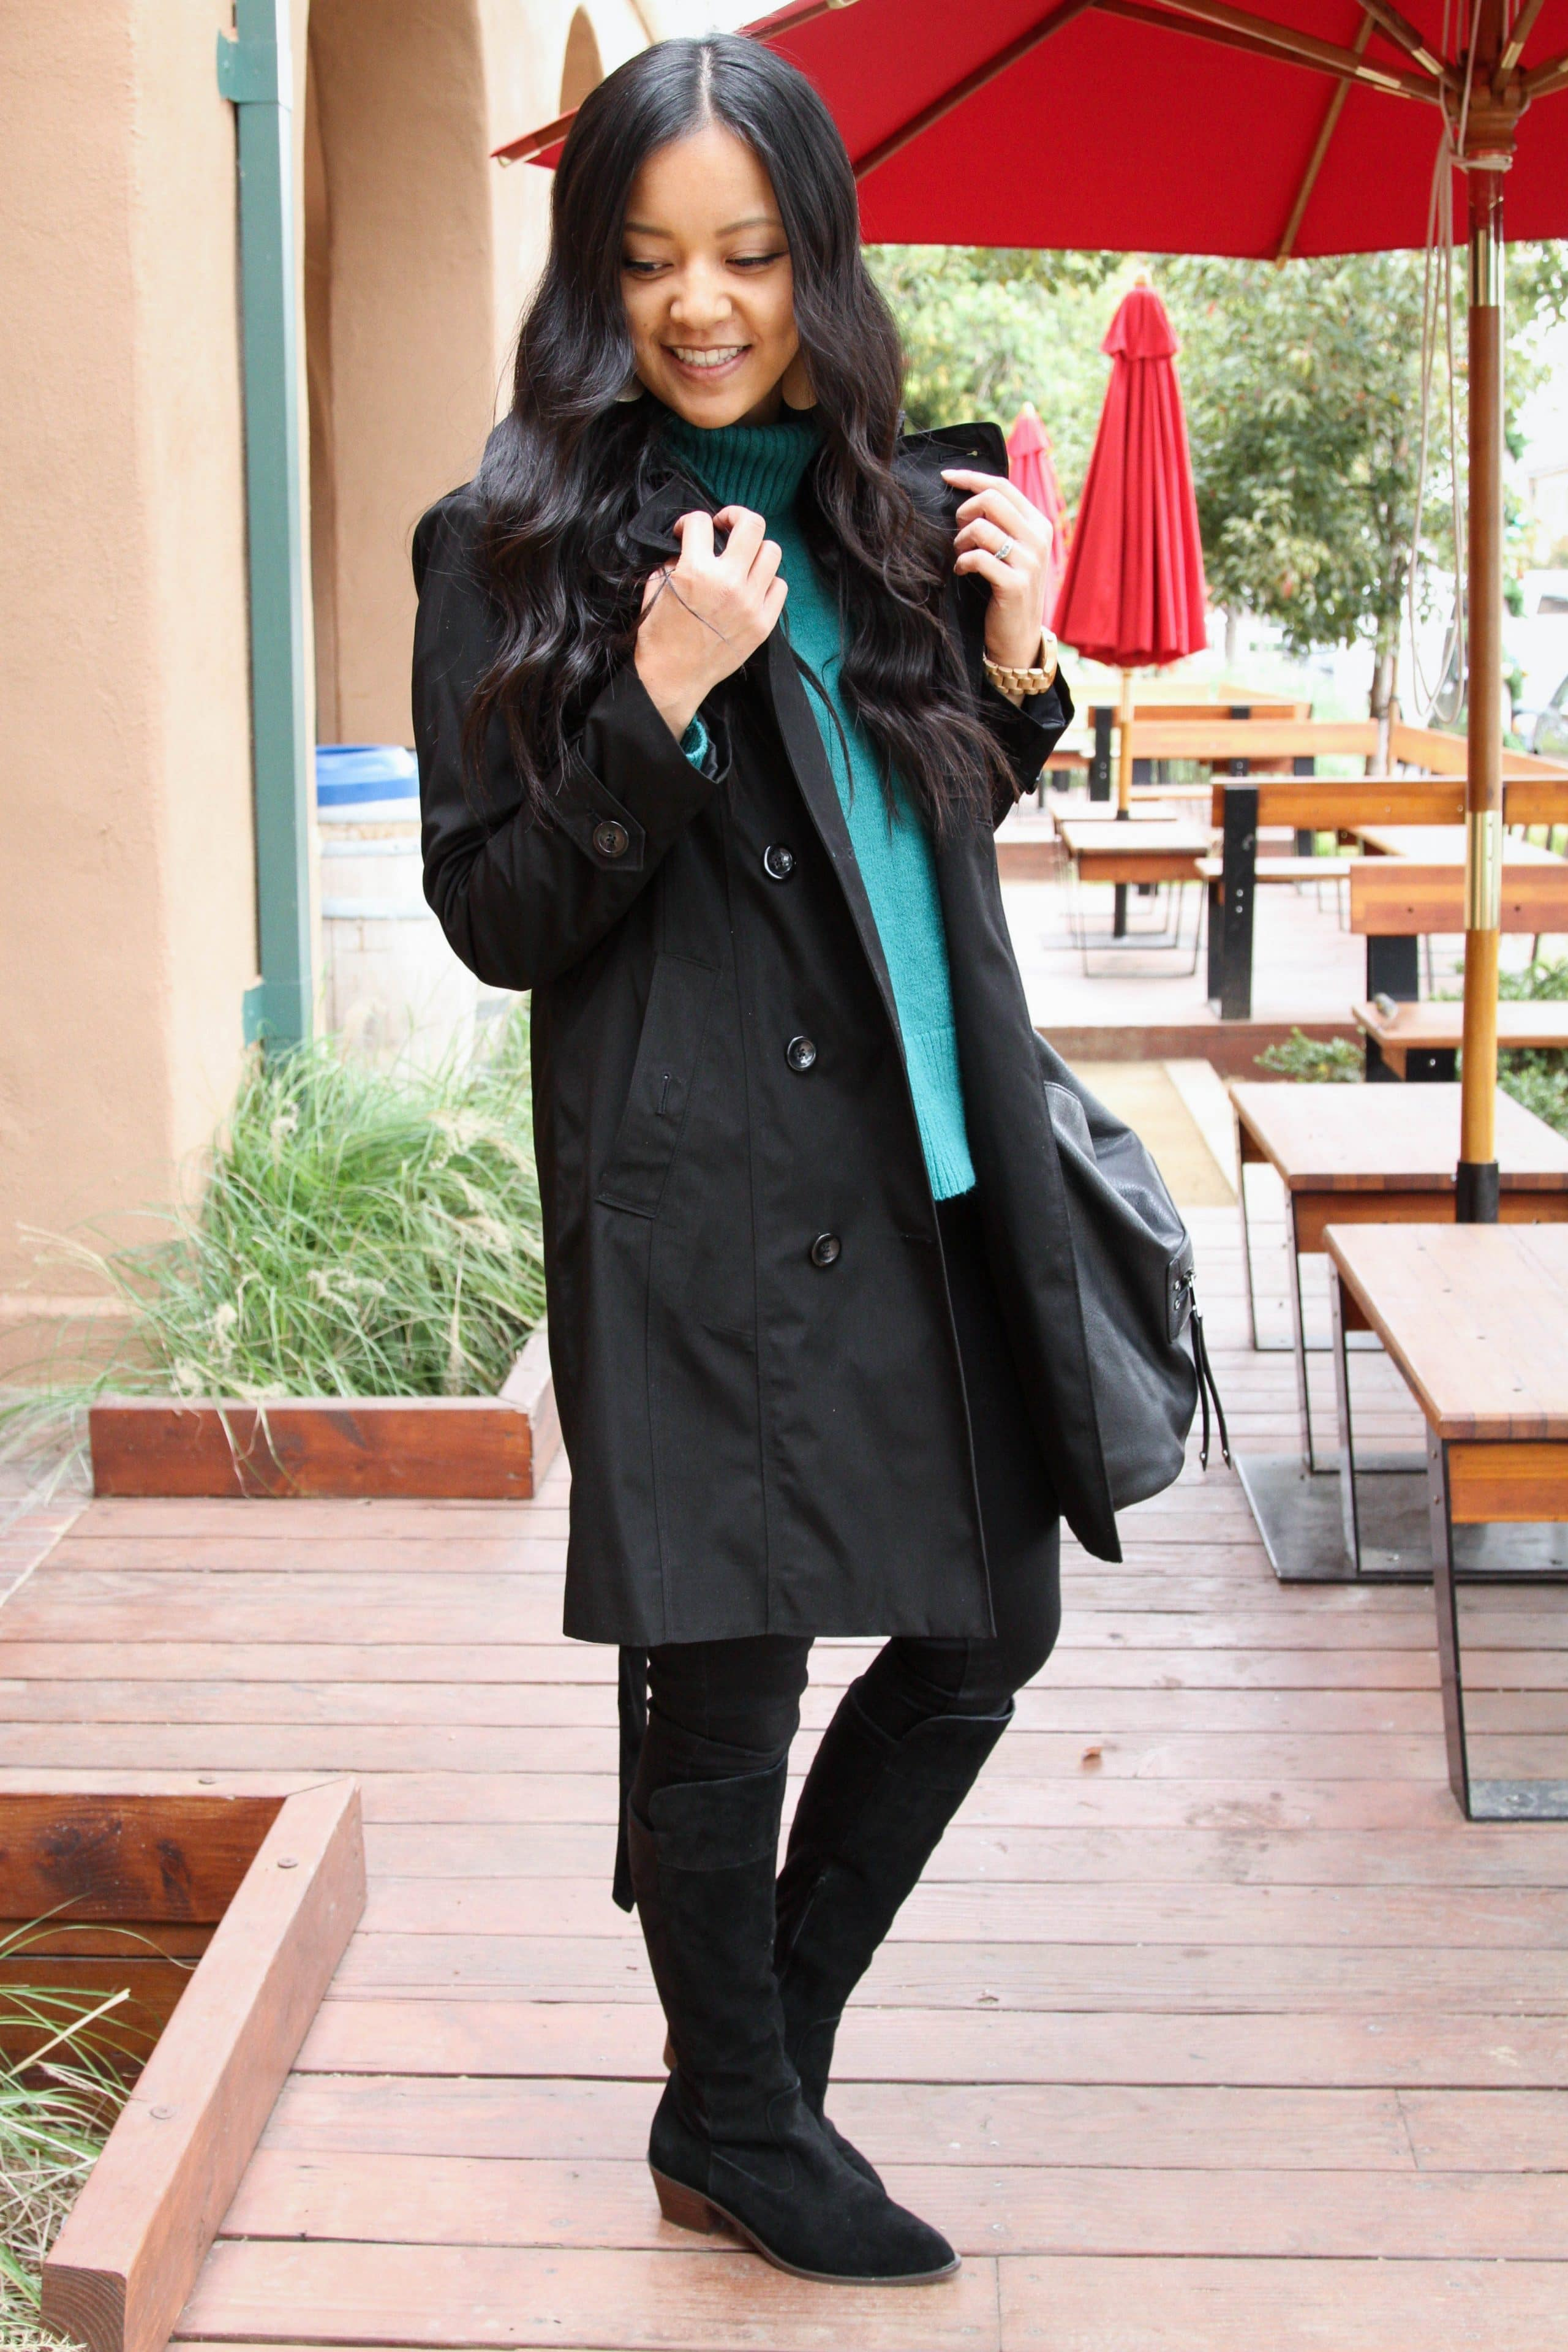 Black boots + Skinnies + Black trench + Green sweater